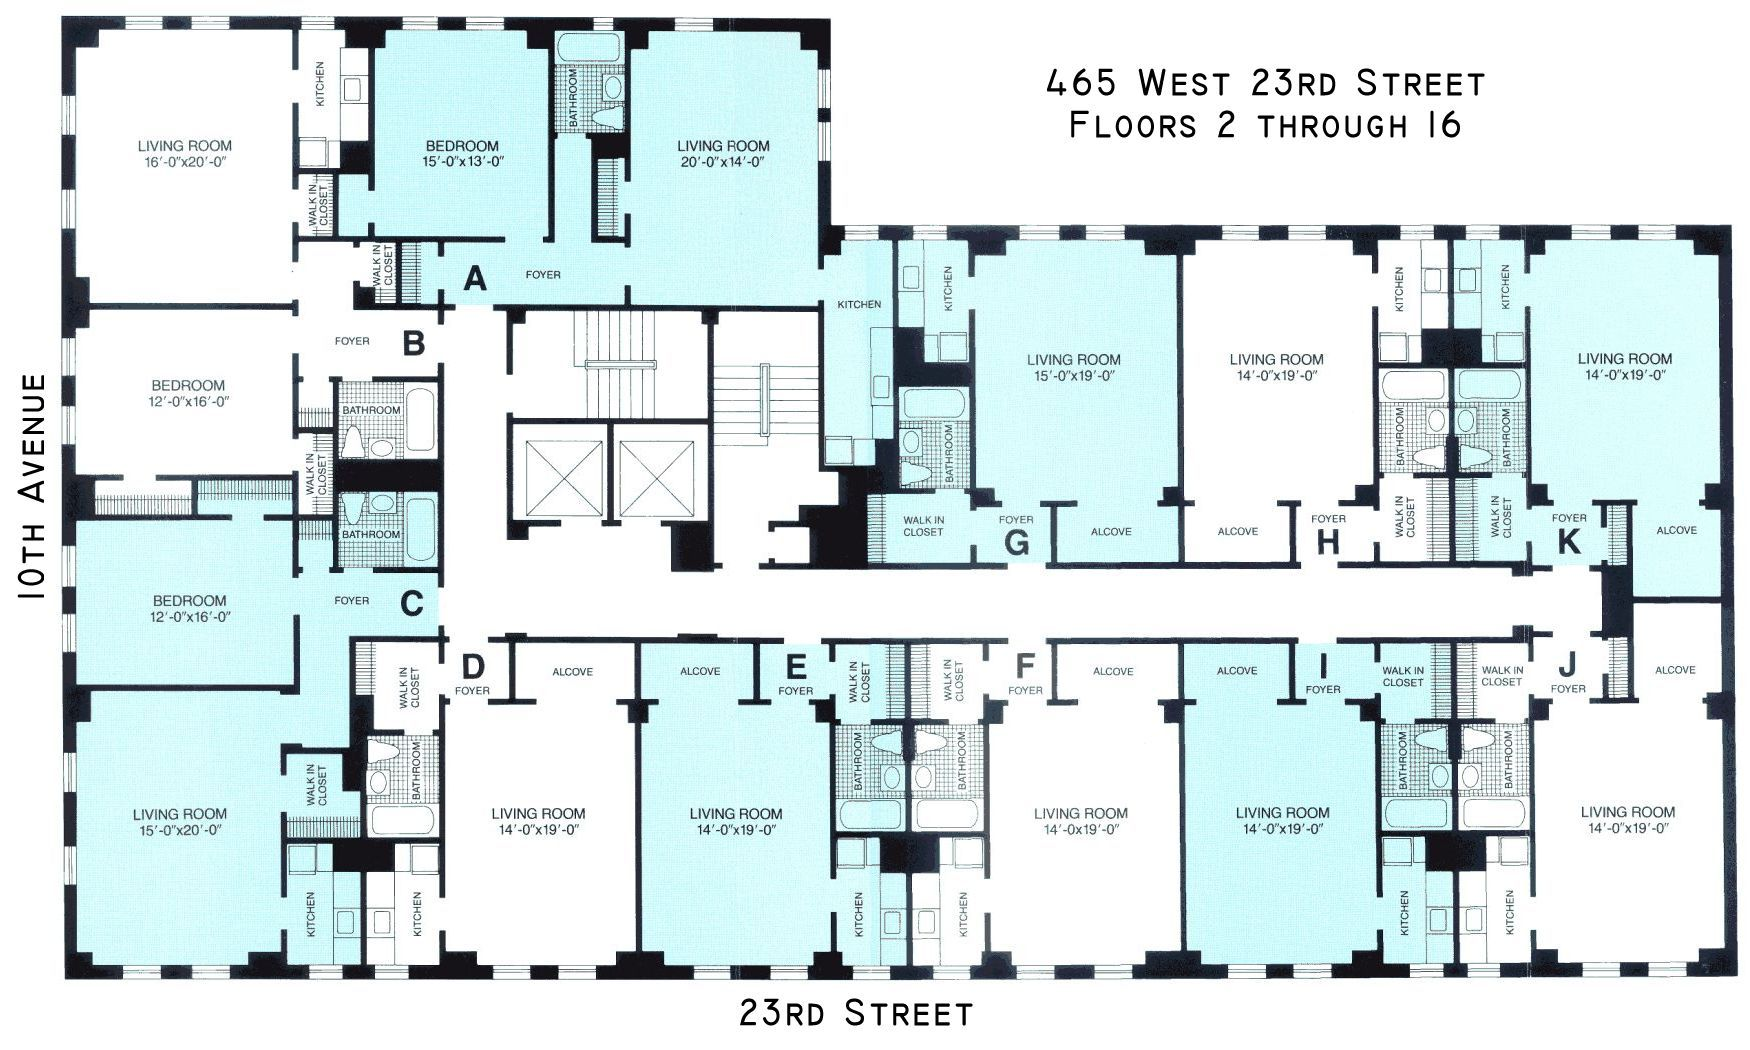 Terrace Floor Plans London Terrace Towers Floorplans New York Usa